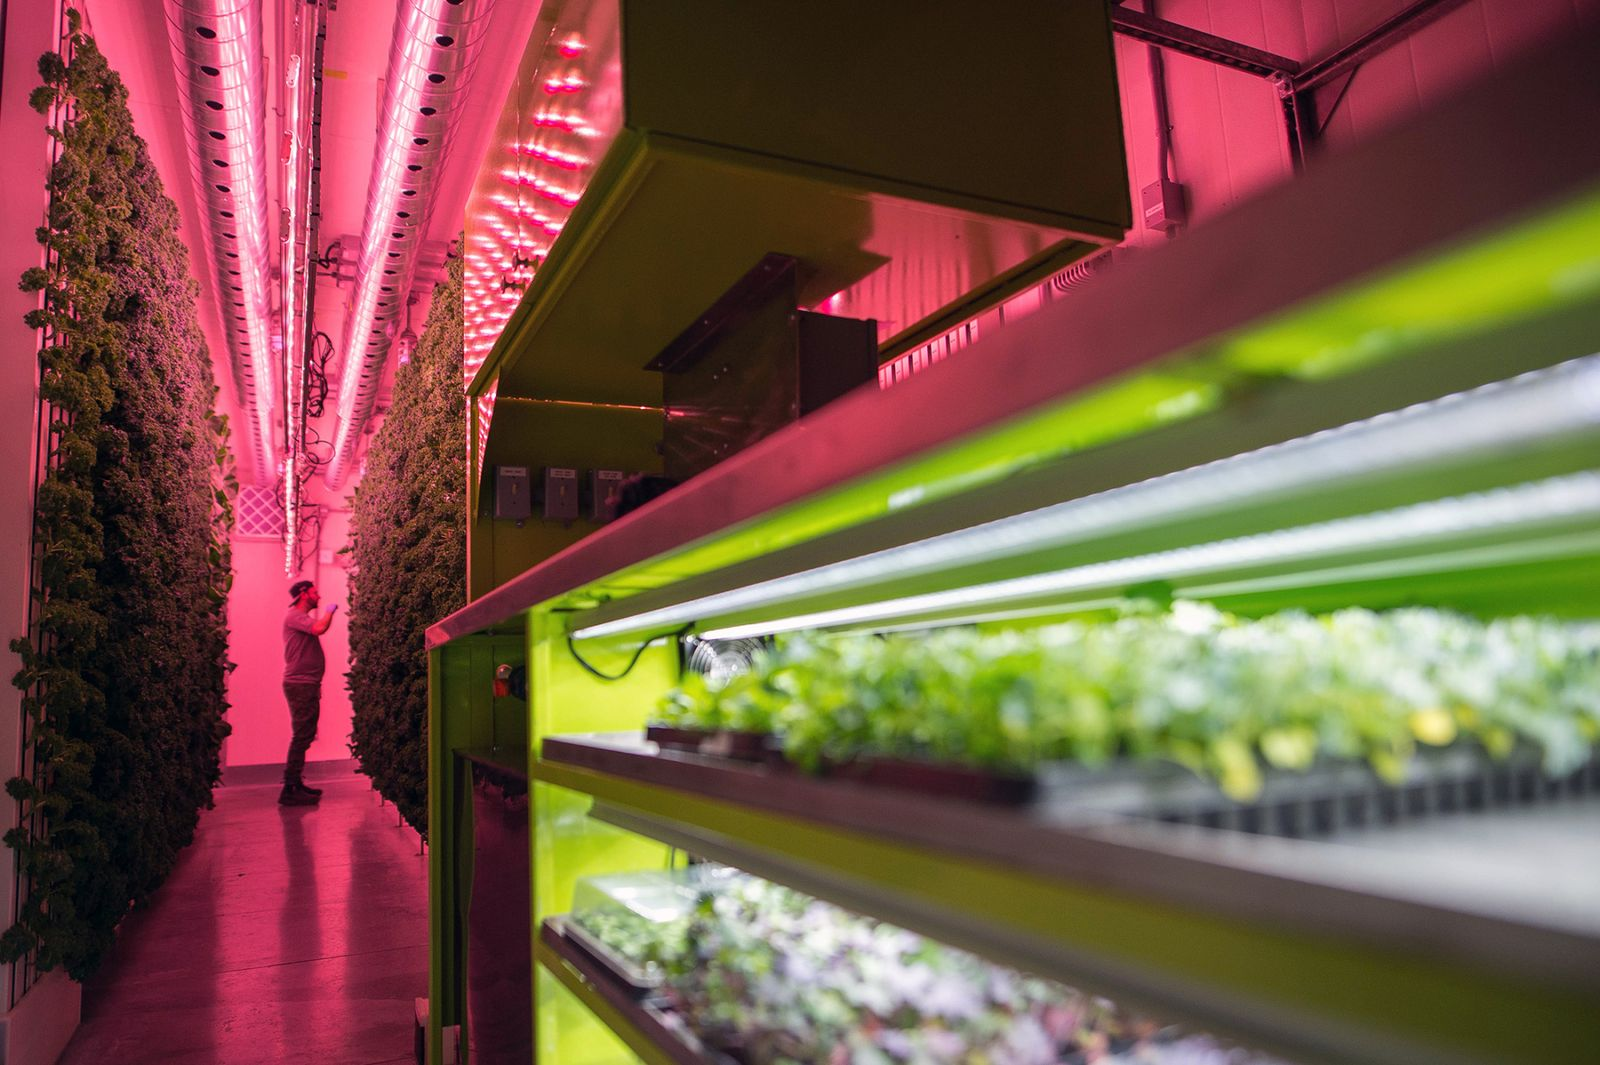 An employee inspects a wall of kale and greens growing vertically inside a modular farming unit at Modular Farms Co.